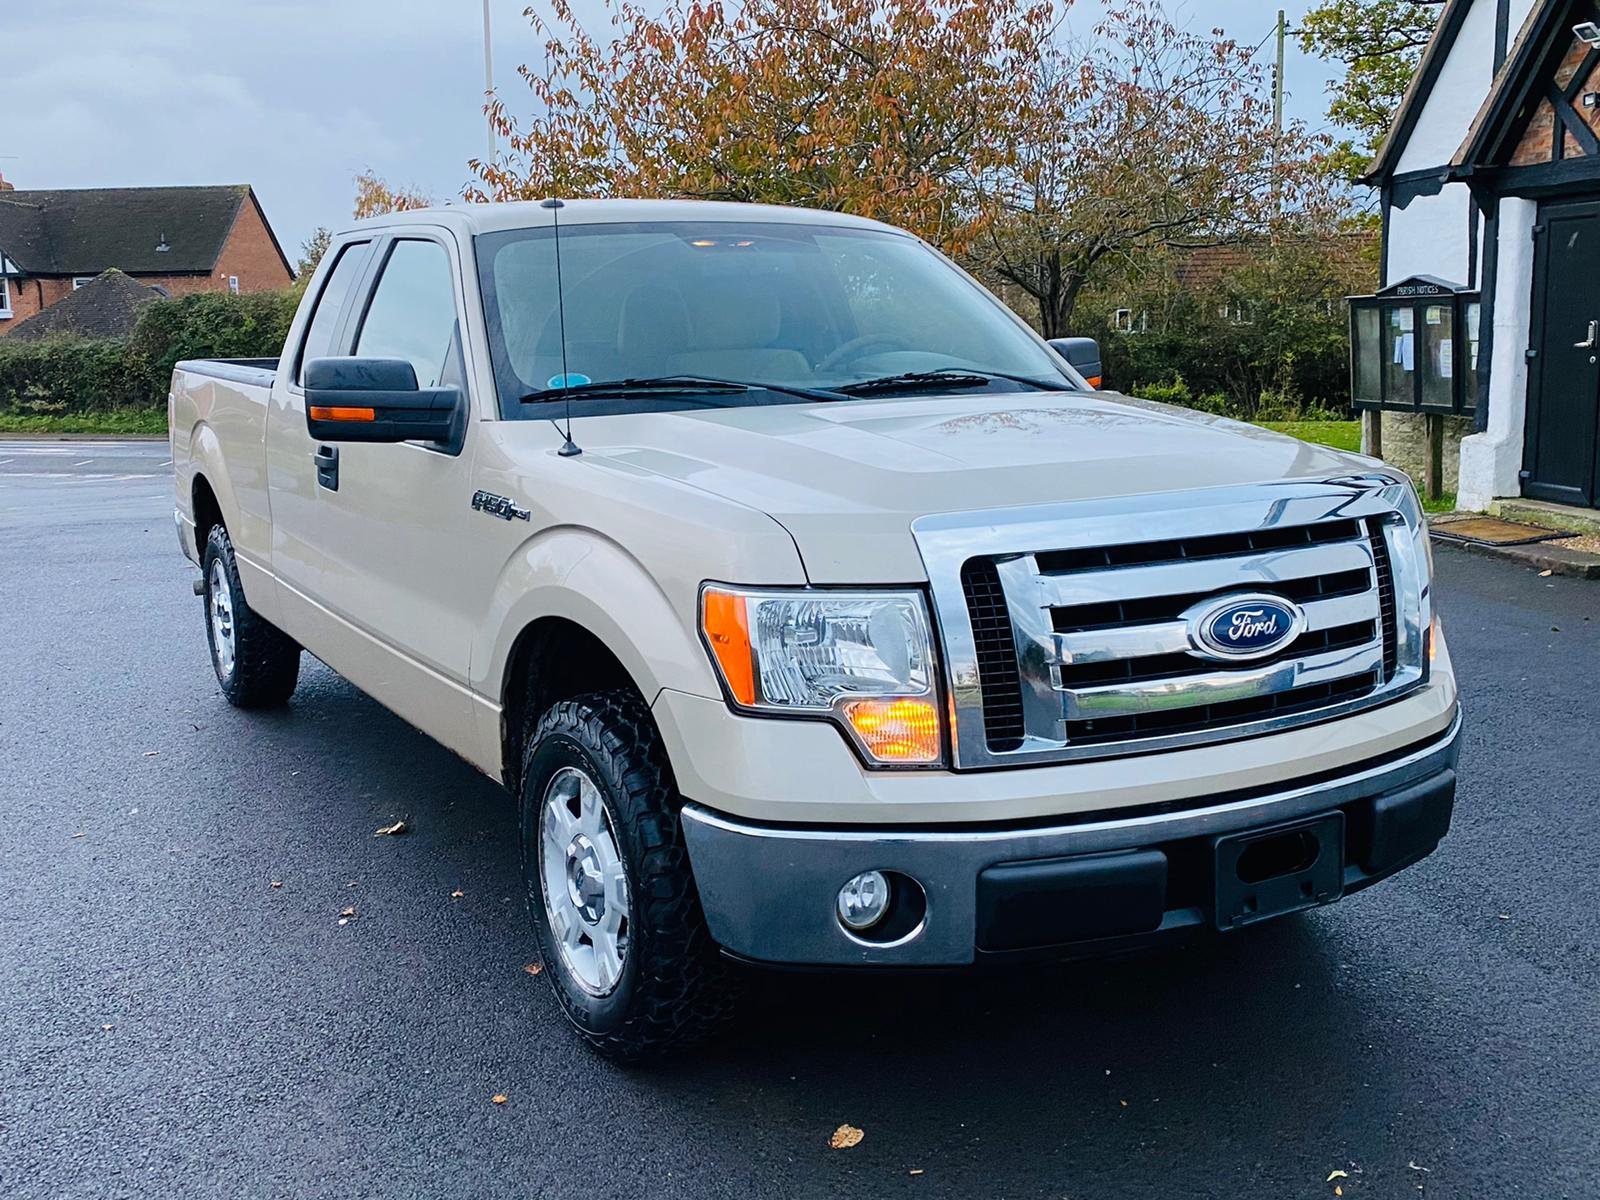 (RESERVE MET) Ford F-150 XLT 4.6L V8 Supercab - 2010 Year - 6 Seats - Fresh Imports - Image 11 of 39